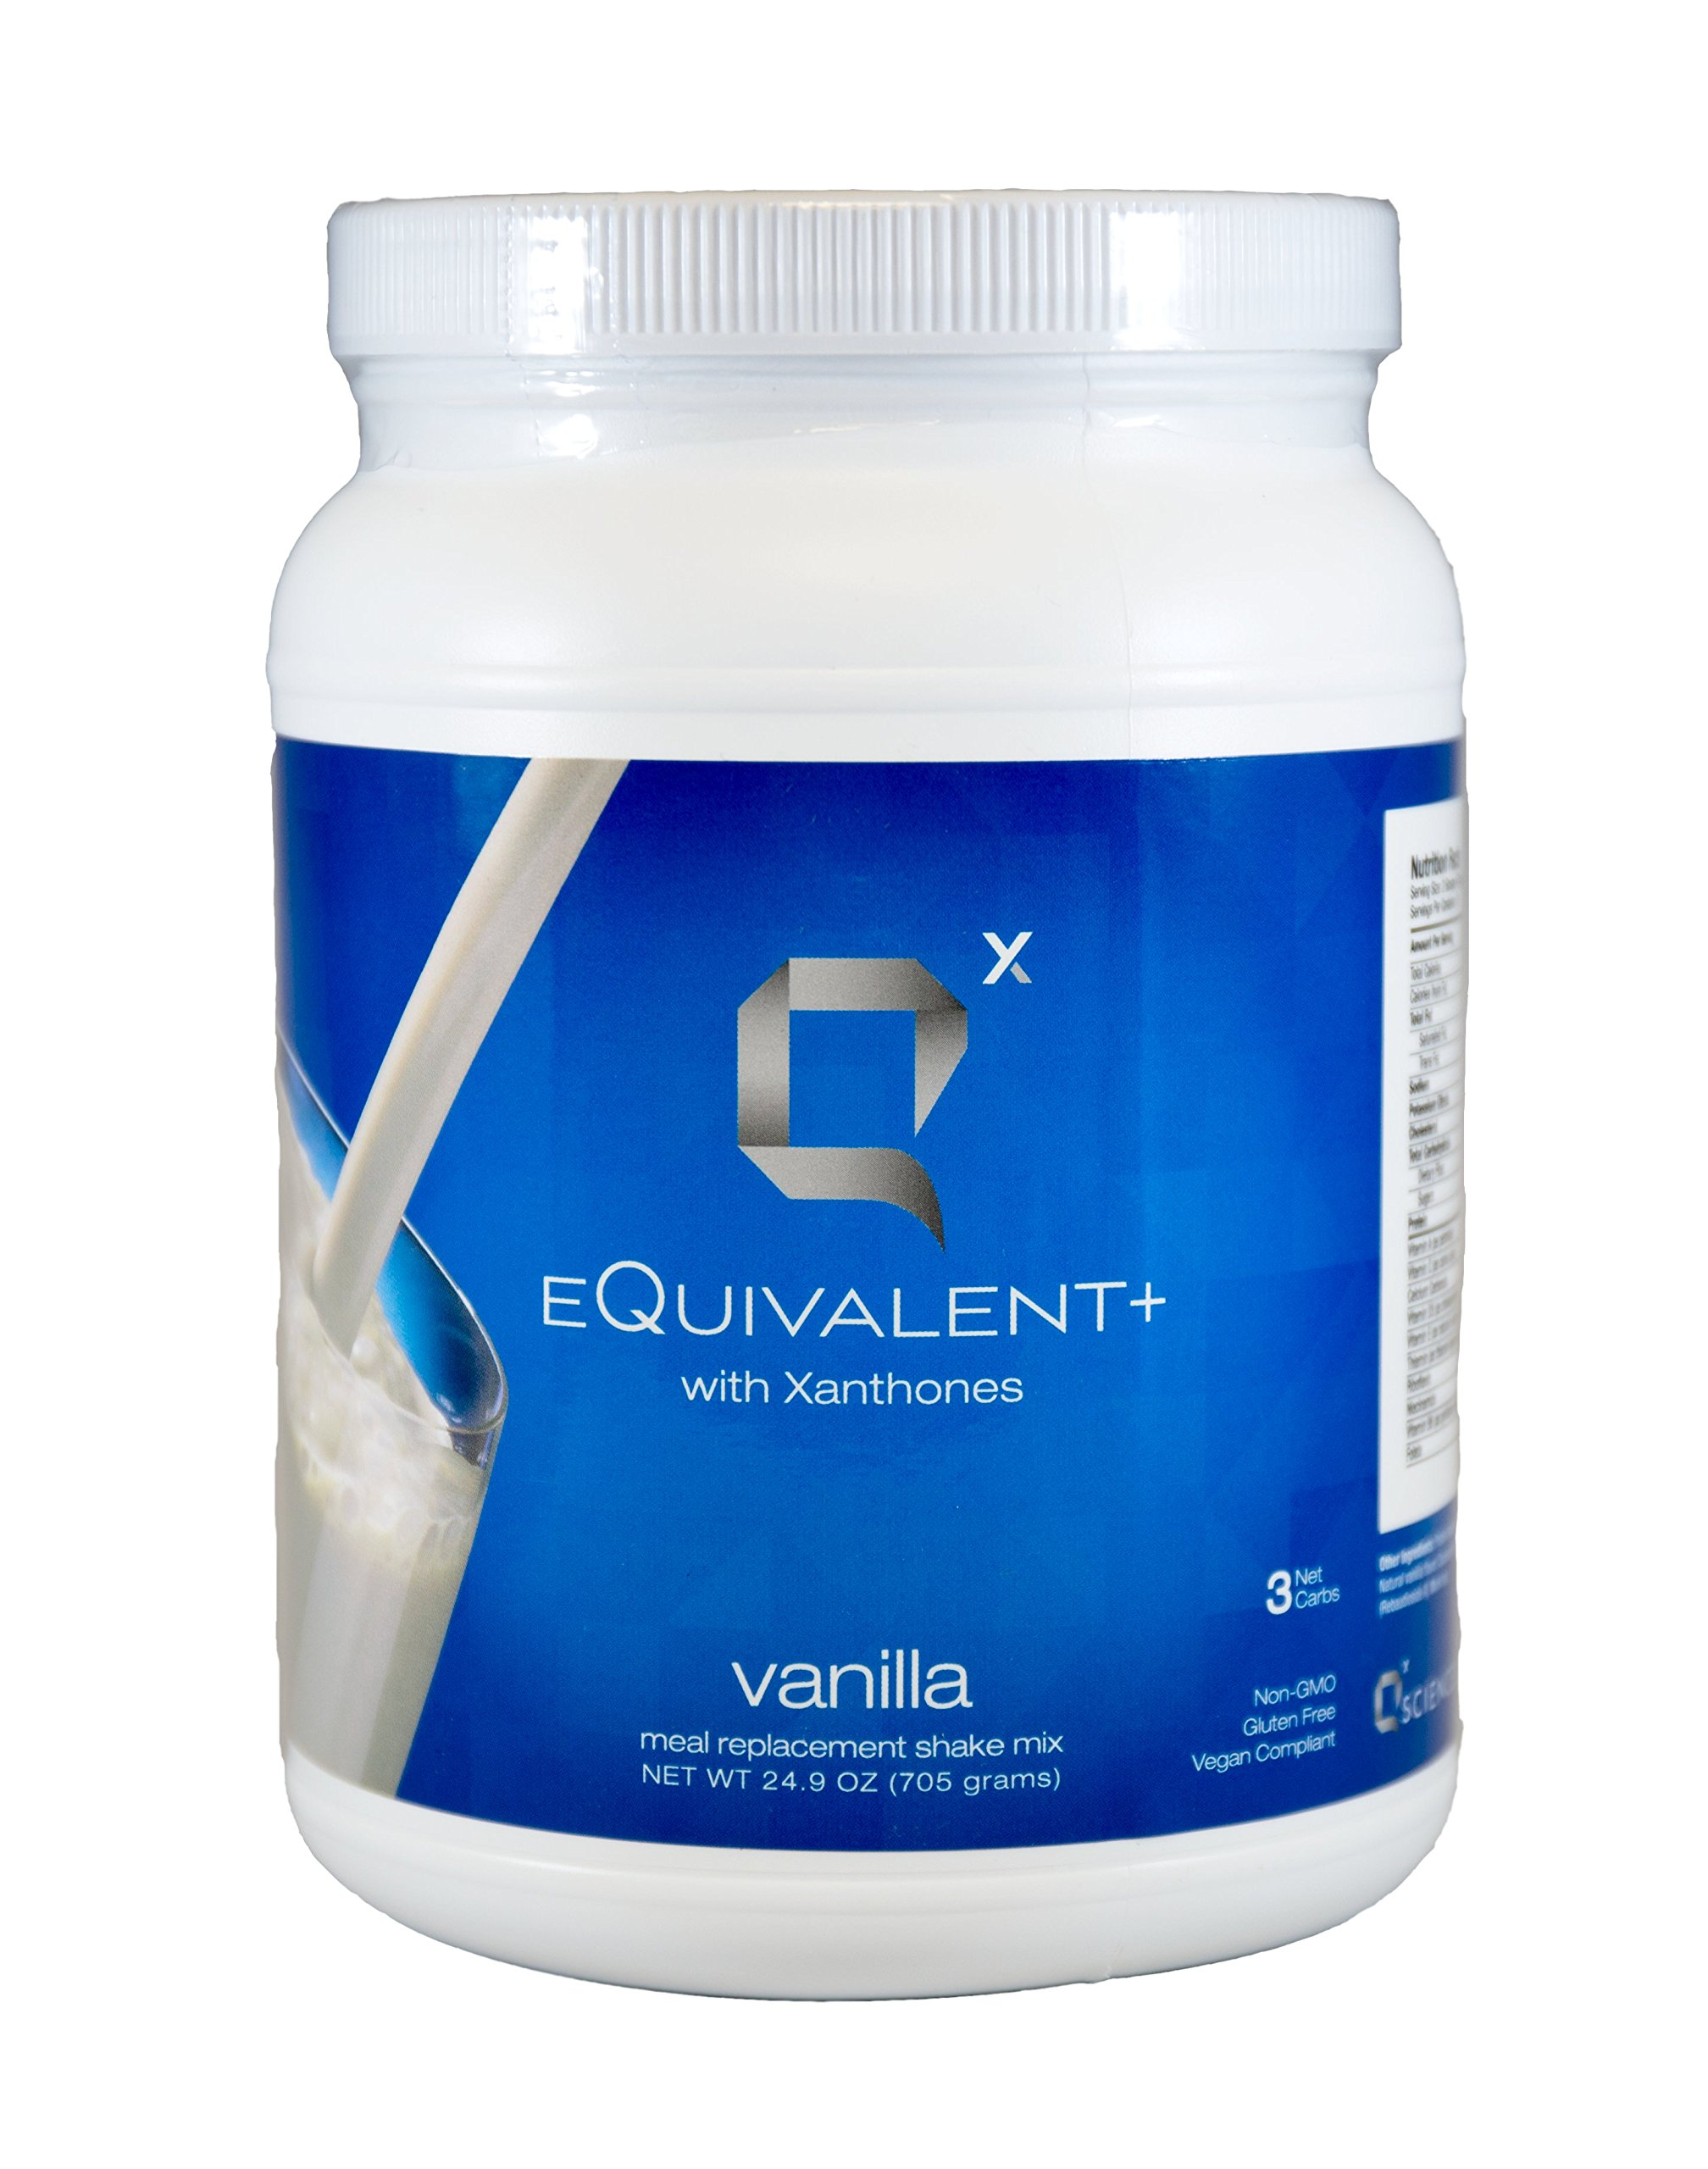 eQuivalent+ with Xanthones: Q Sciences Meal Replacement Shake, Protein Shake w/Enzymes & Antioxidants, Weight Loss Shake, Blood Sugar Regulation, Dietary Supplement Meal Replacement Powder 24oz